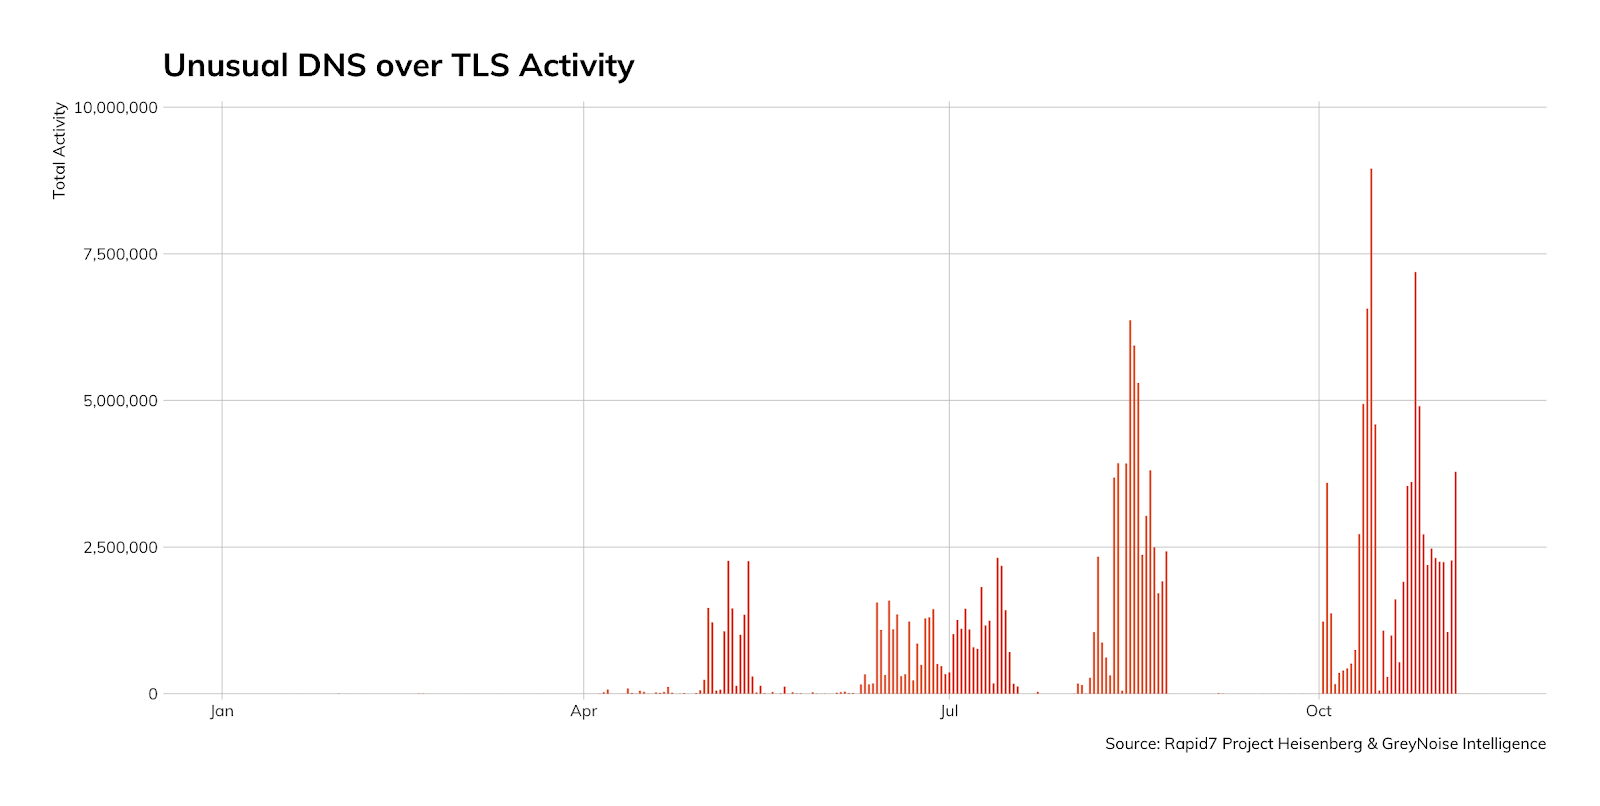 Figure 11: Unusual DNS Over TLS Activity